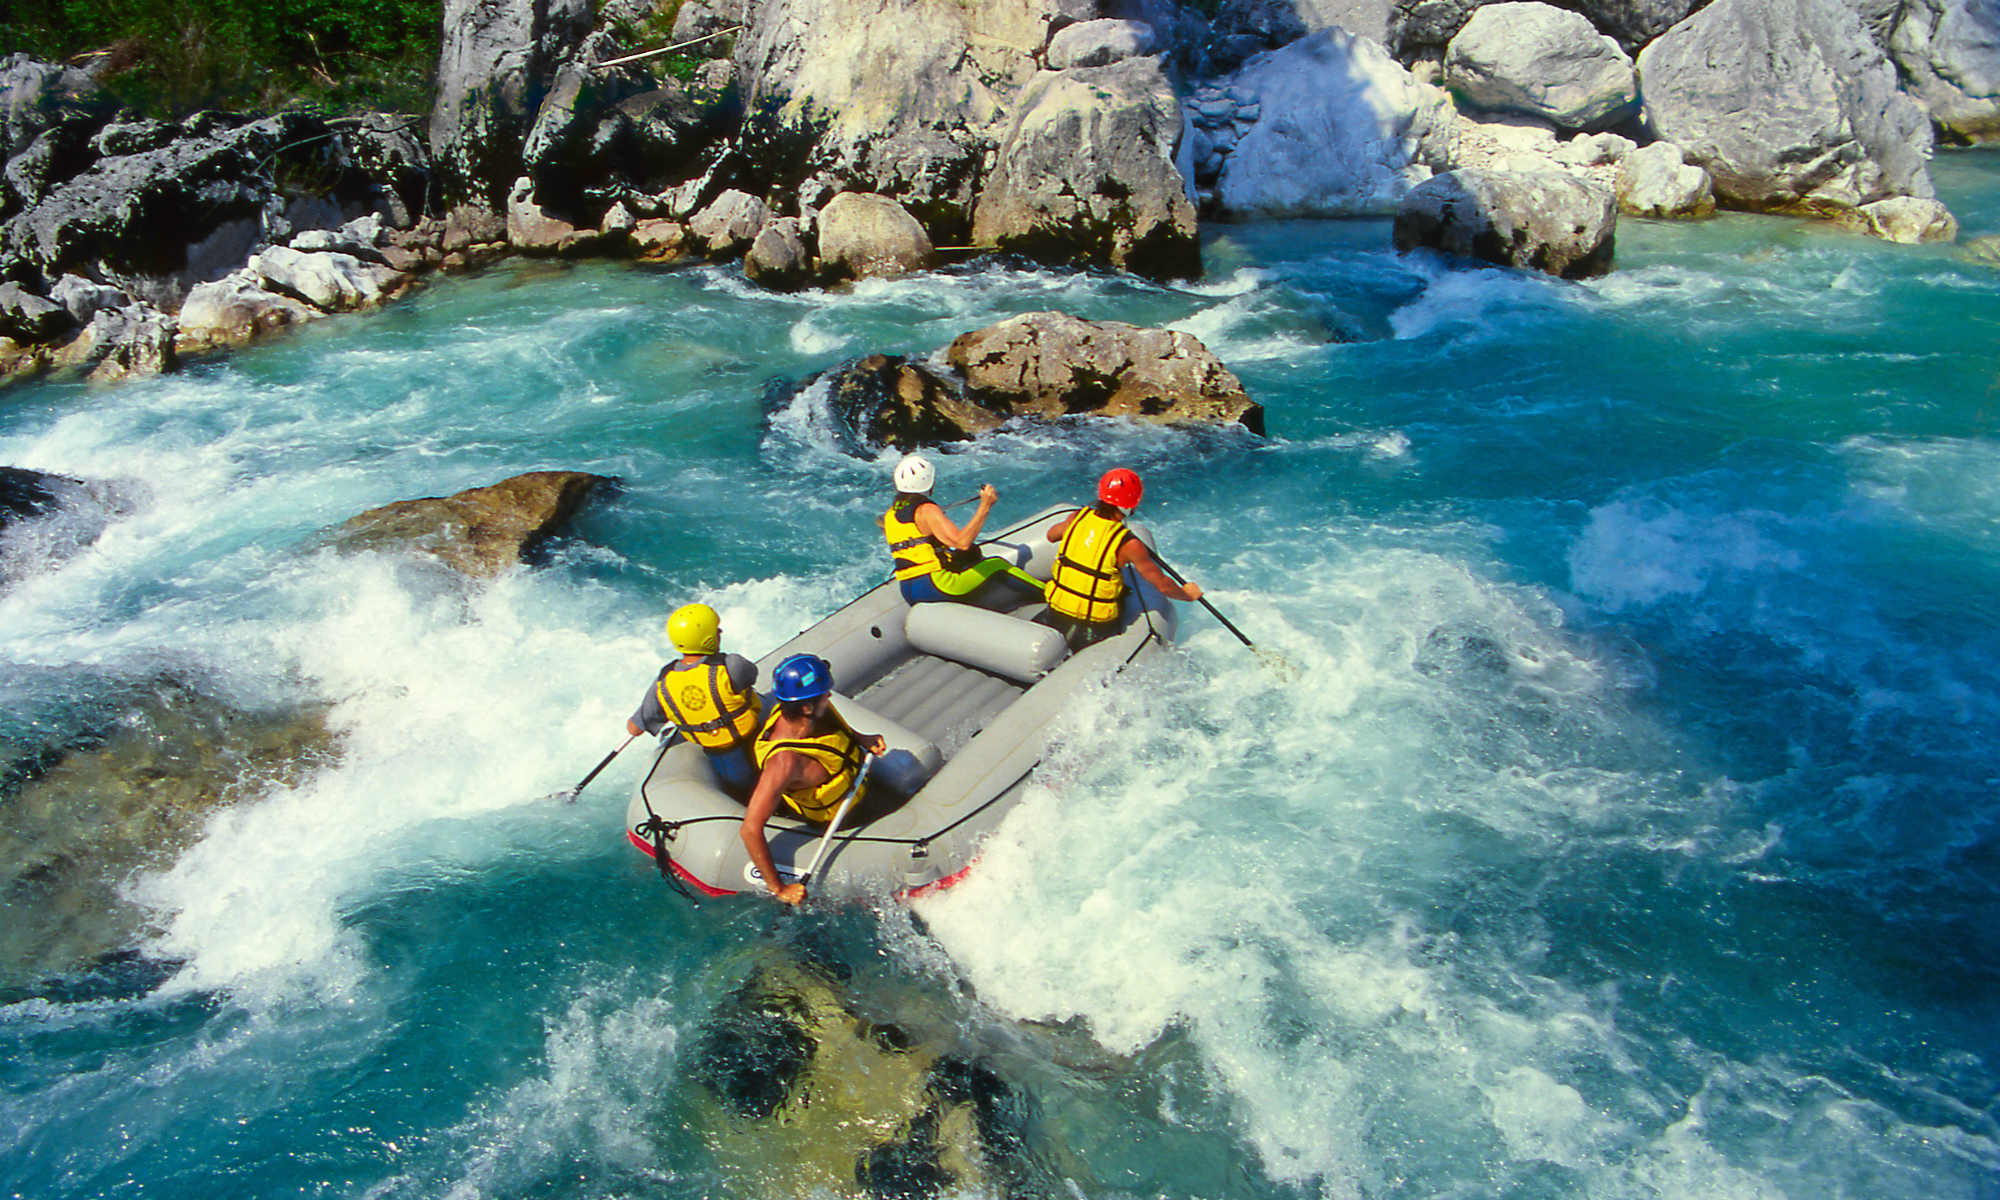 A group of people in a raft is navigating through a rocky passage on an emerald green river.